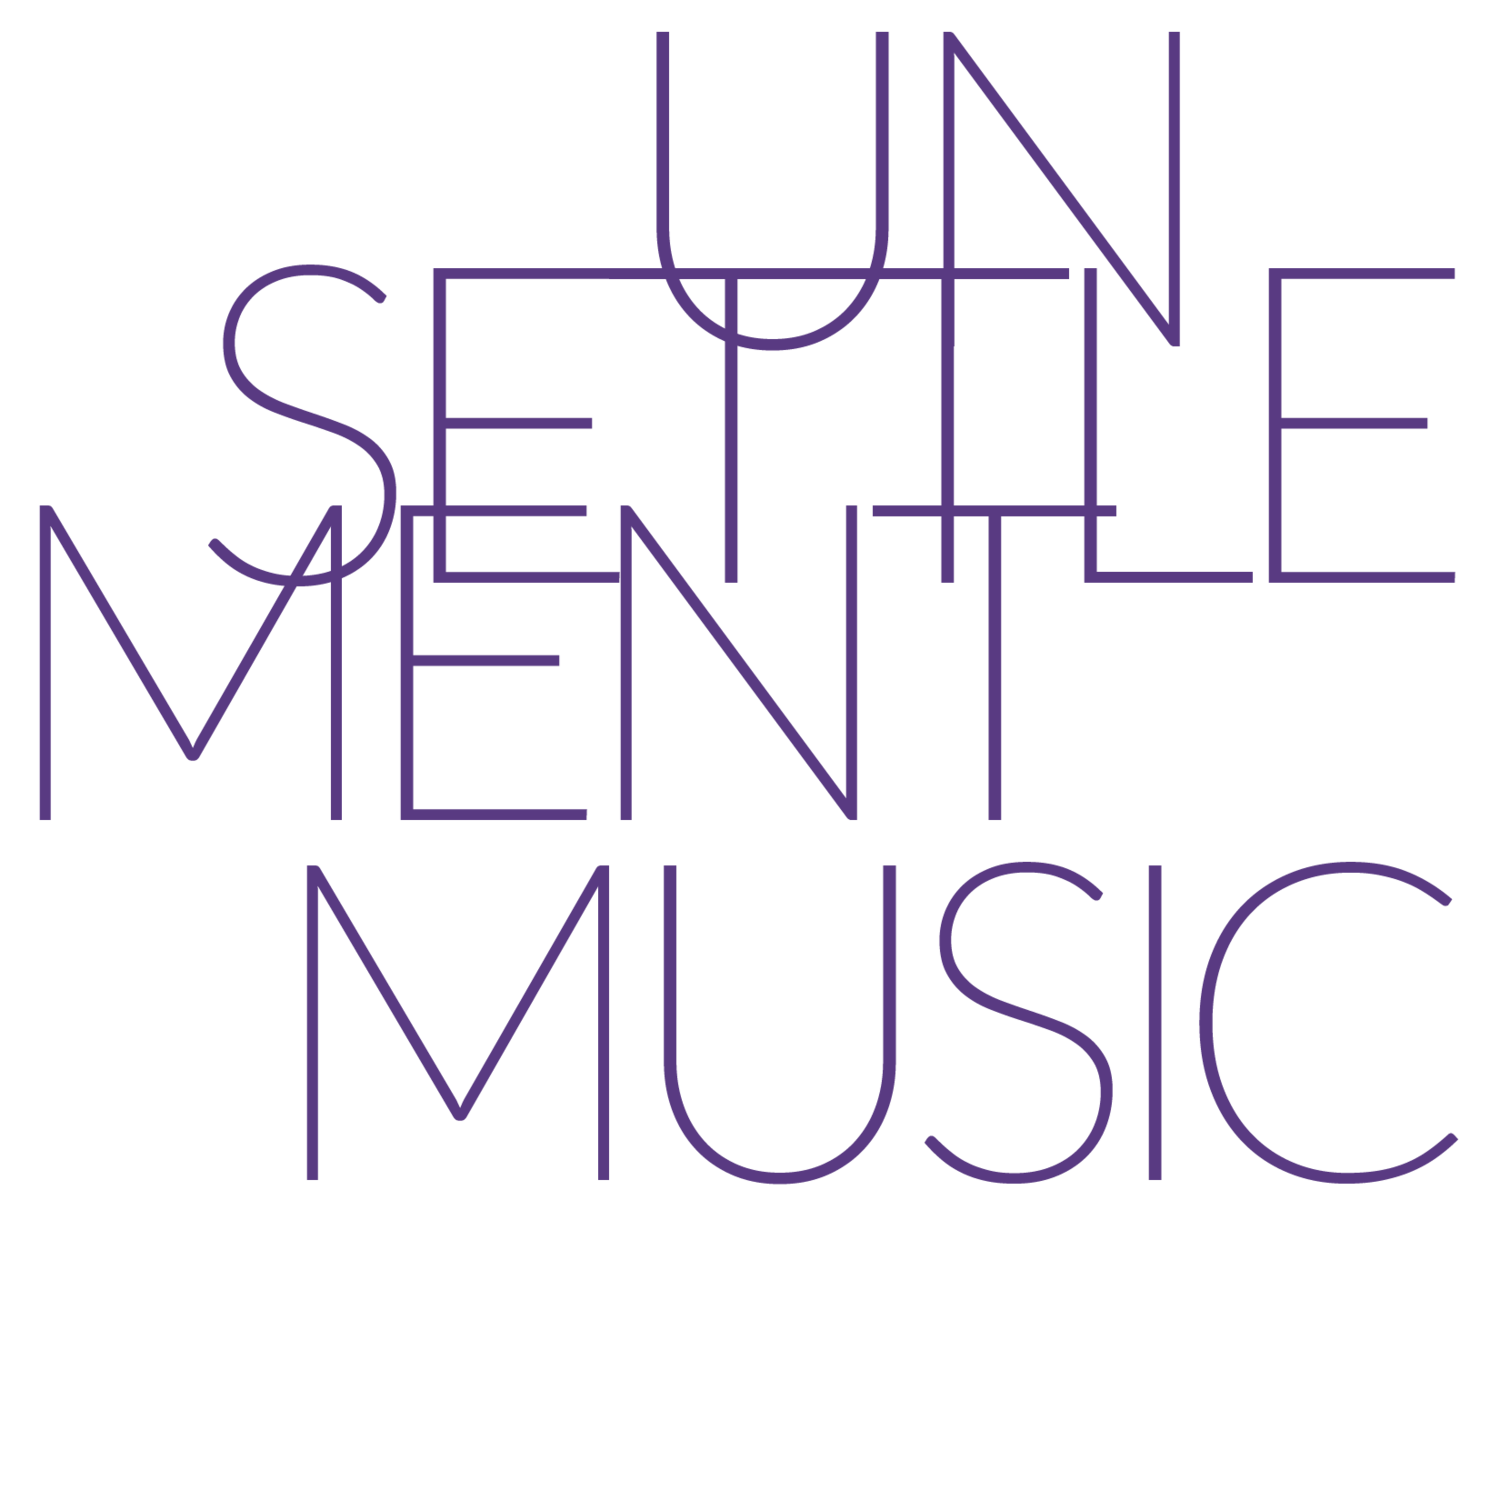 UNSETTLEMENT MUSIC